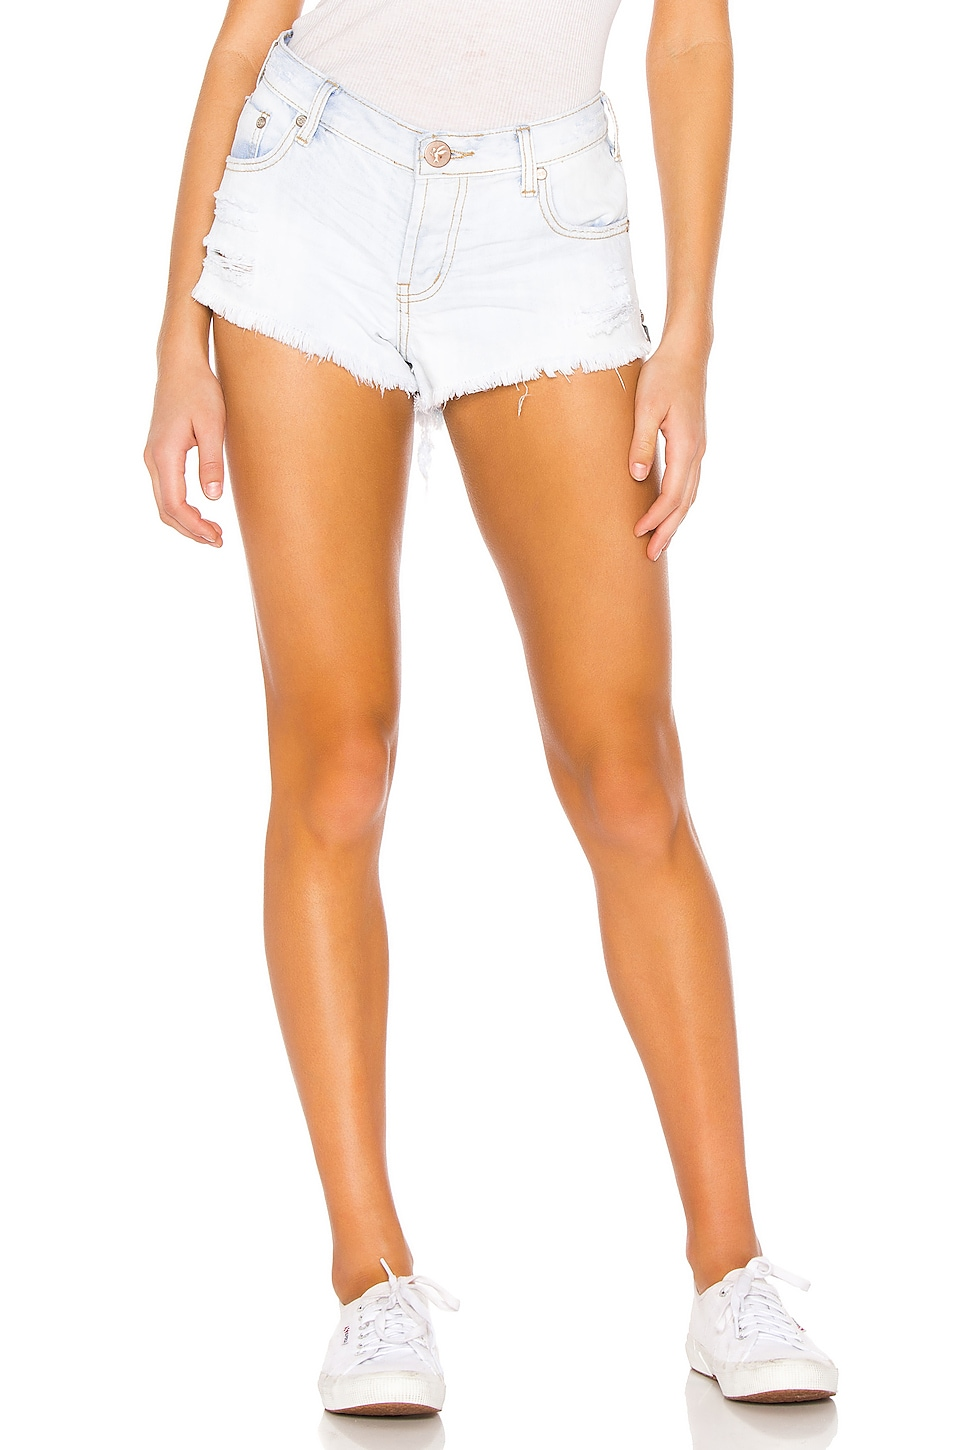 One Teaspoon Bonita Low Waist Short in Brando